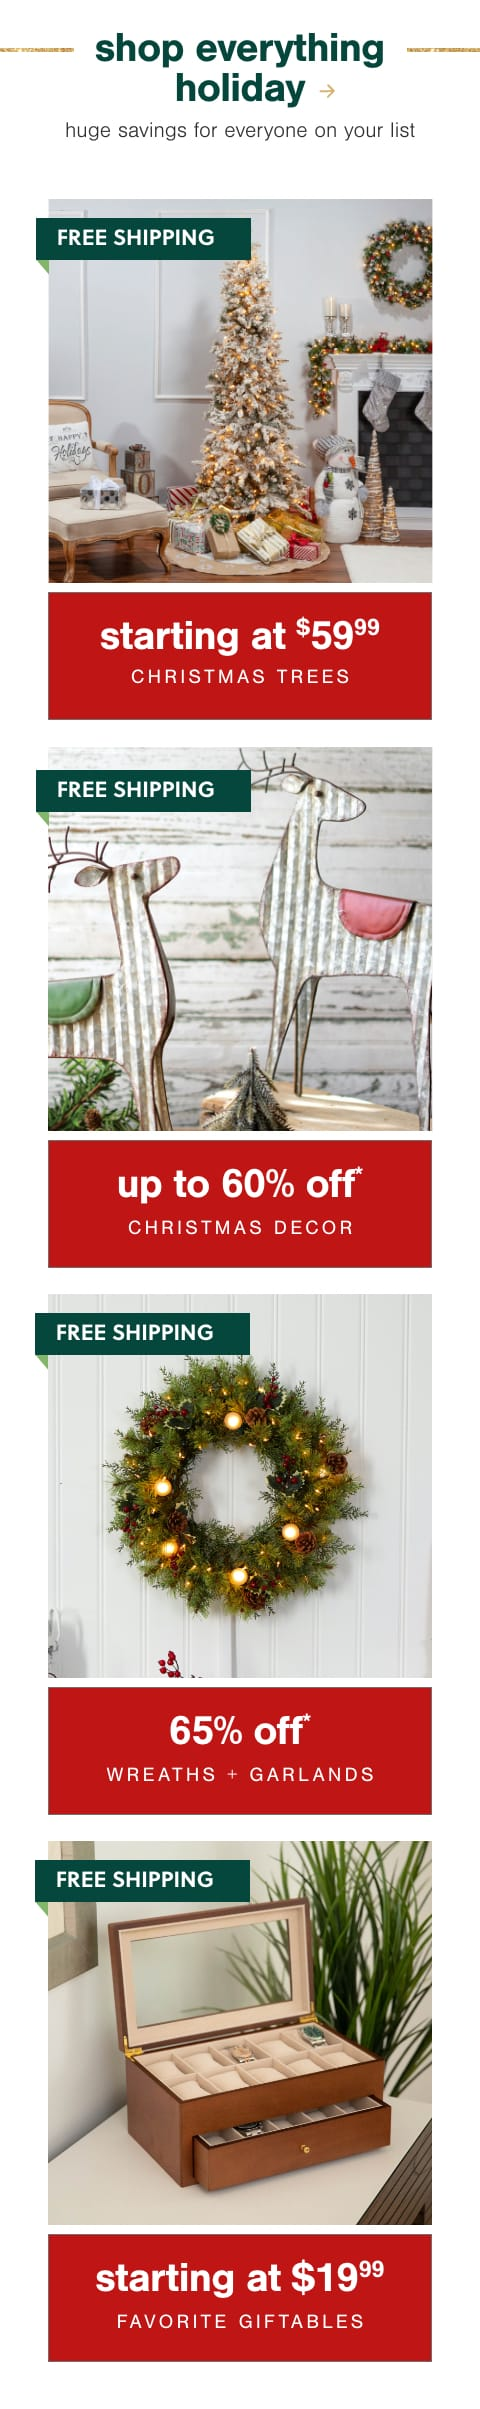 Christmas Trees Starting at $59.99*, Christmas Decor up to 60% Off* + Free Shipping , Faux Wreaths & Garlands 65% Off* + Free Shipping